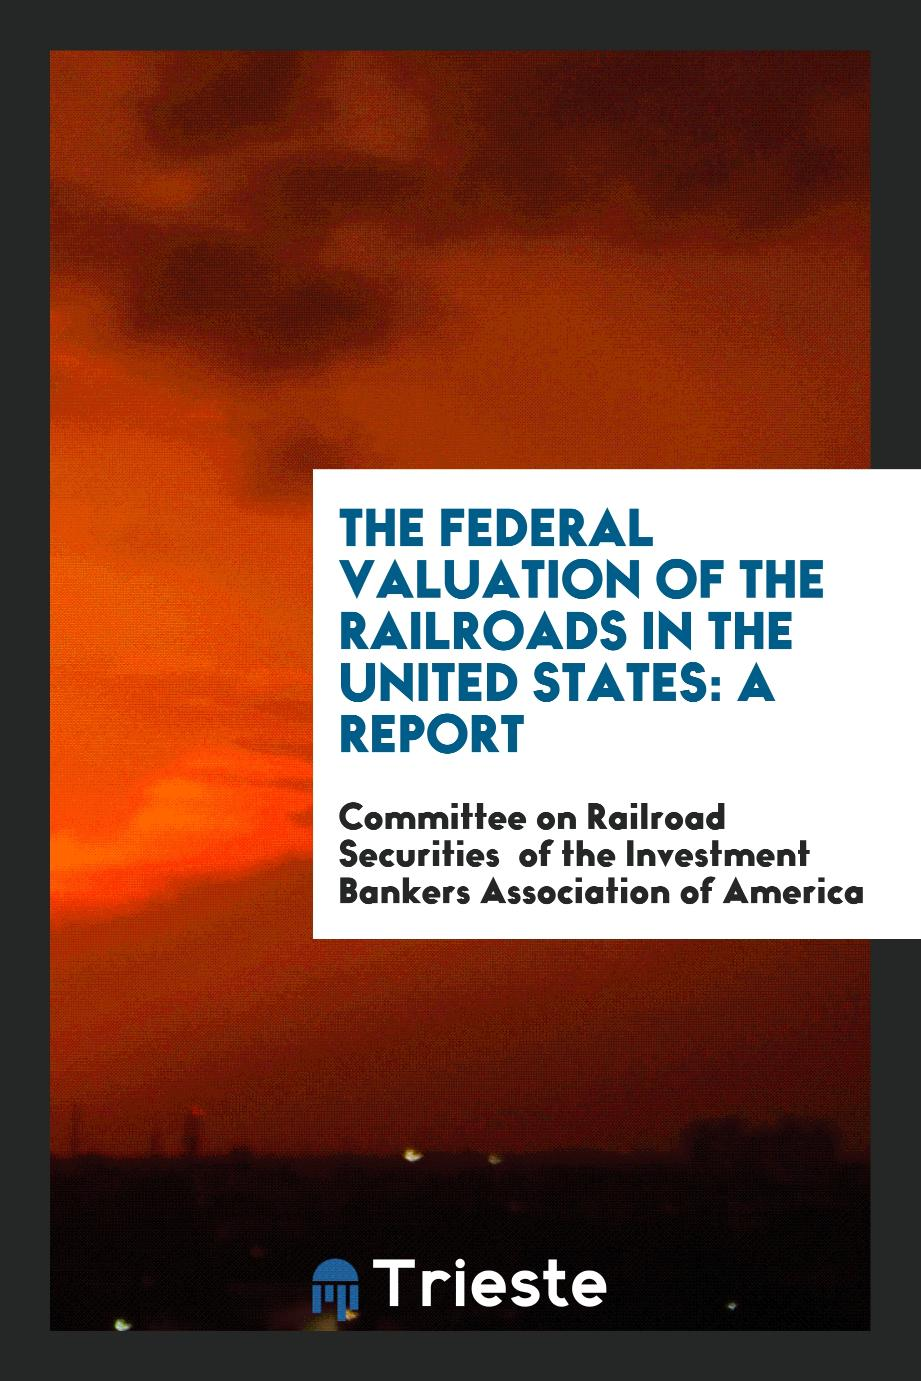 The Federal Valuation of the Railroads in the United States: a report